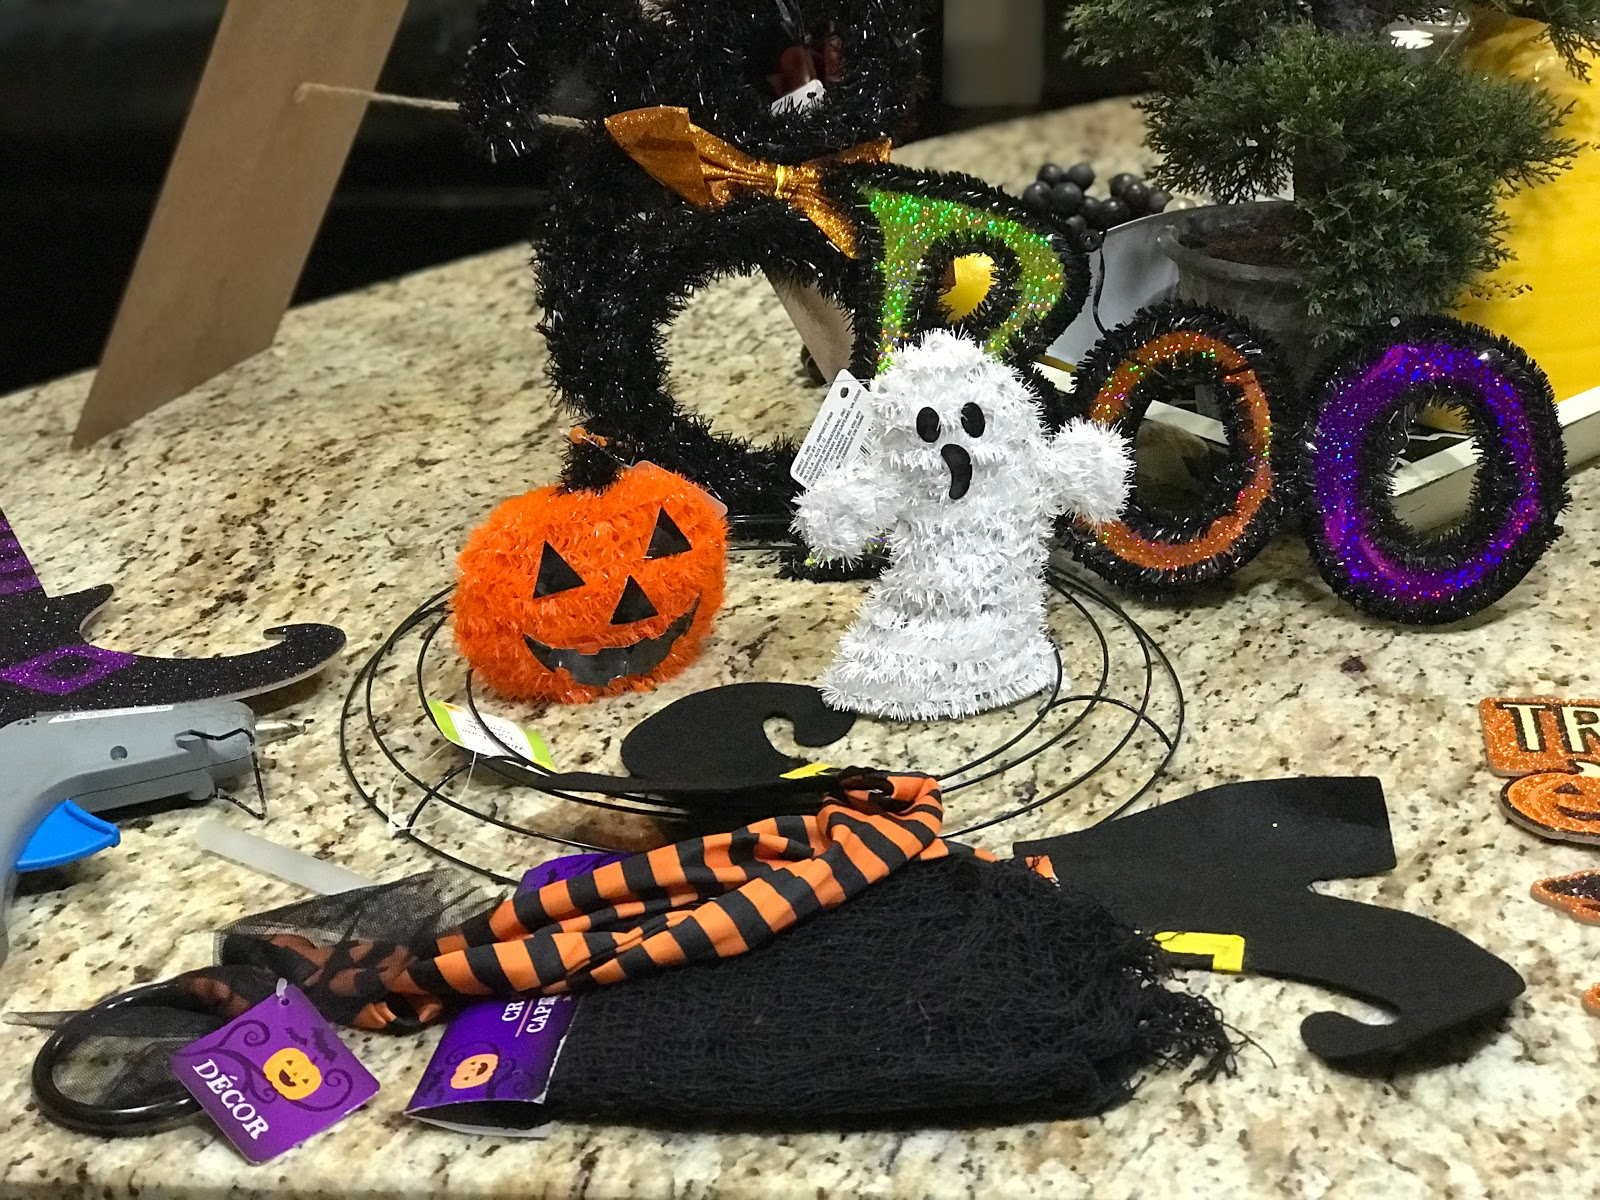 Image: Halloween Decorations that will be used for outside decorations